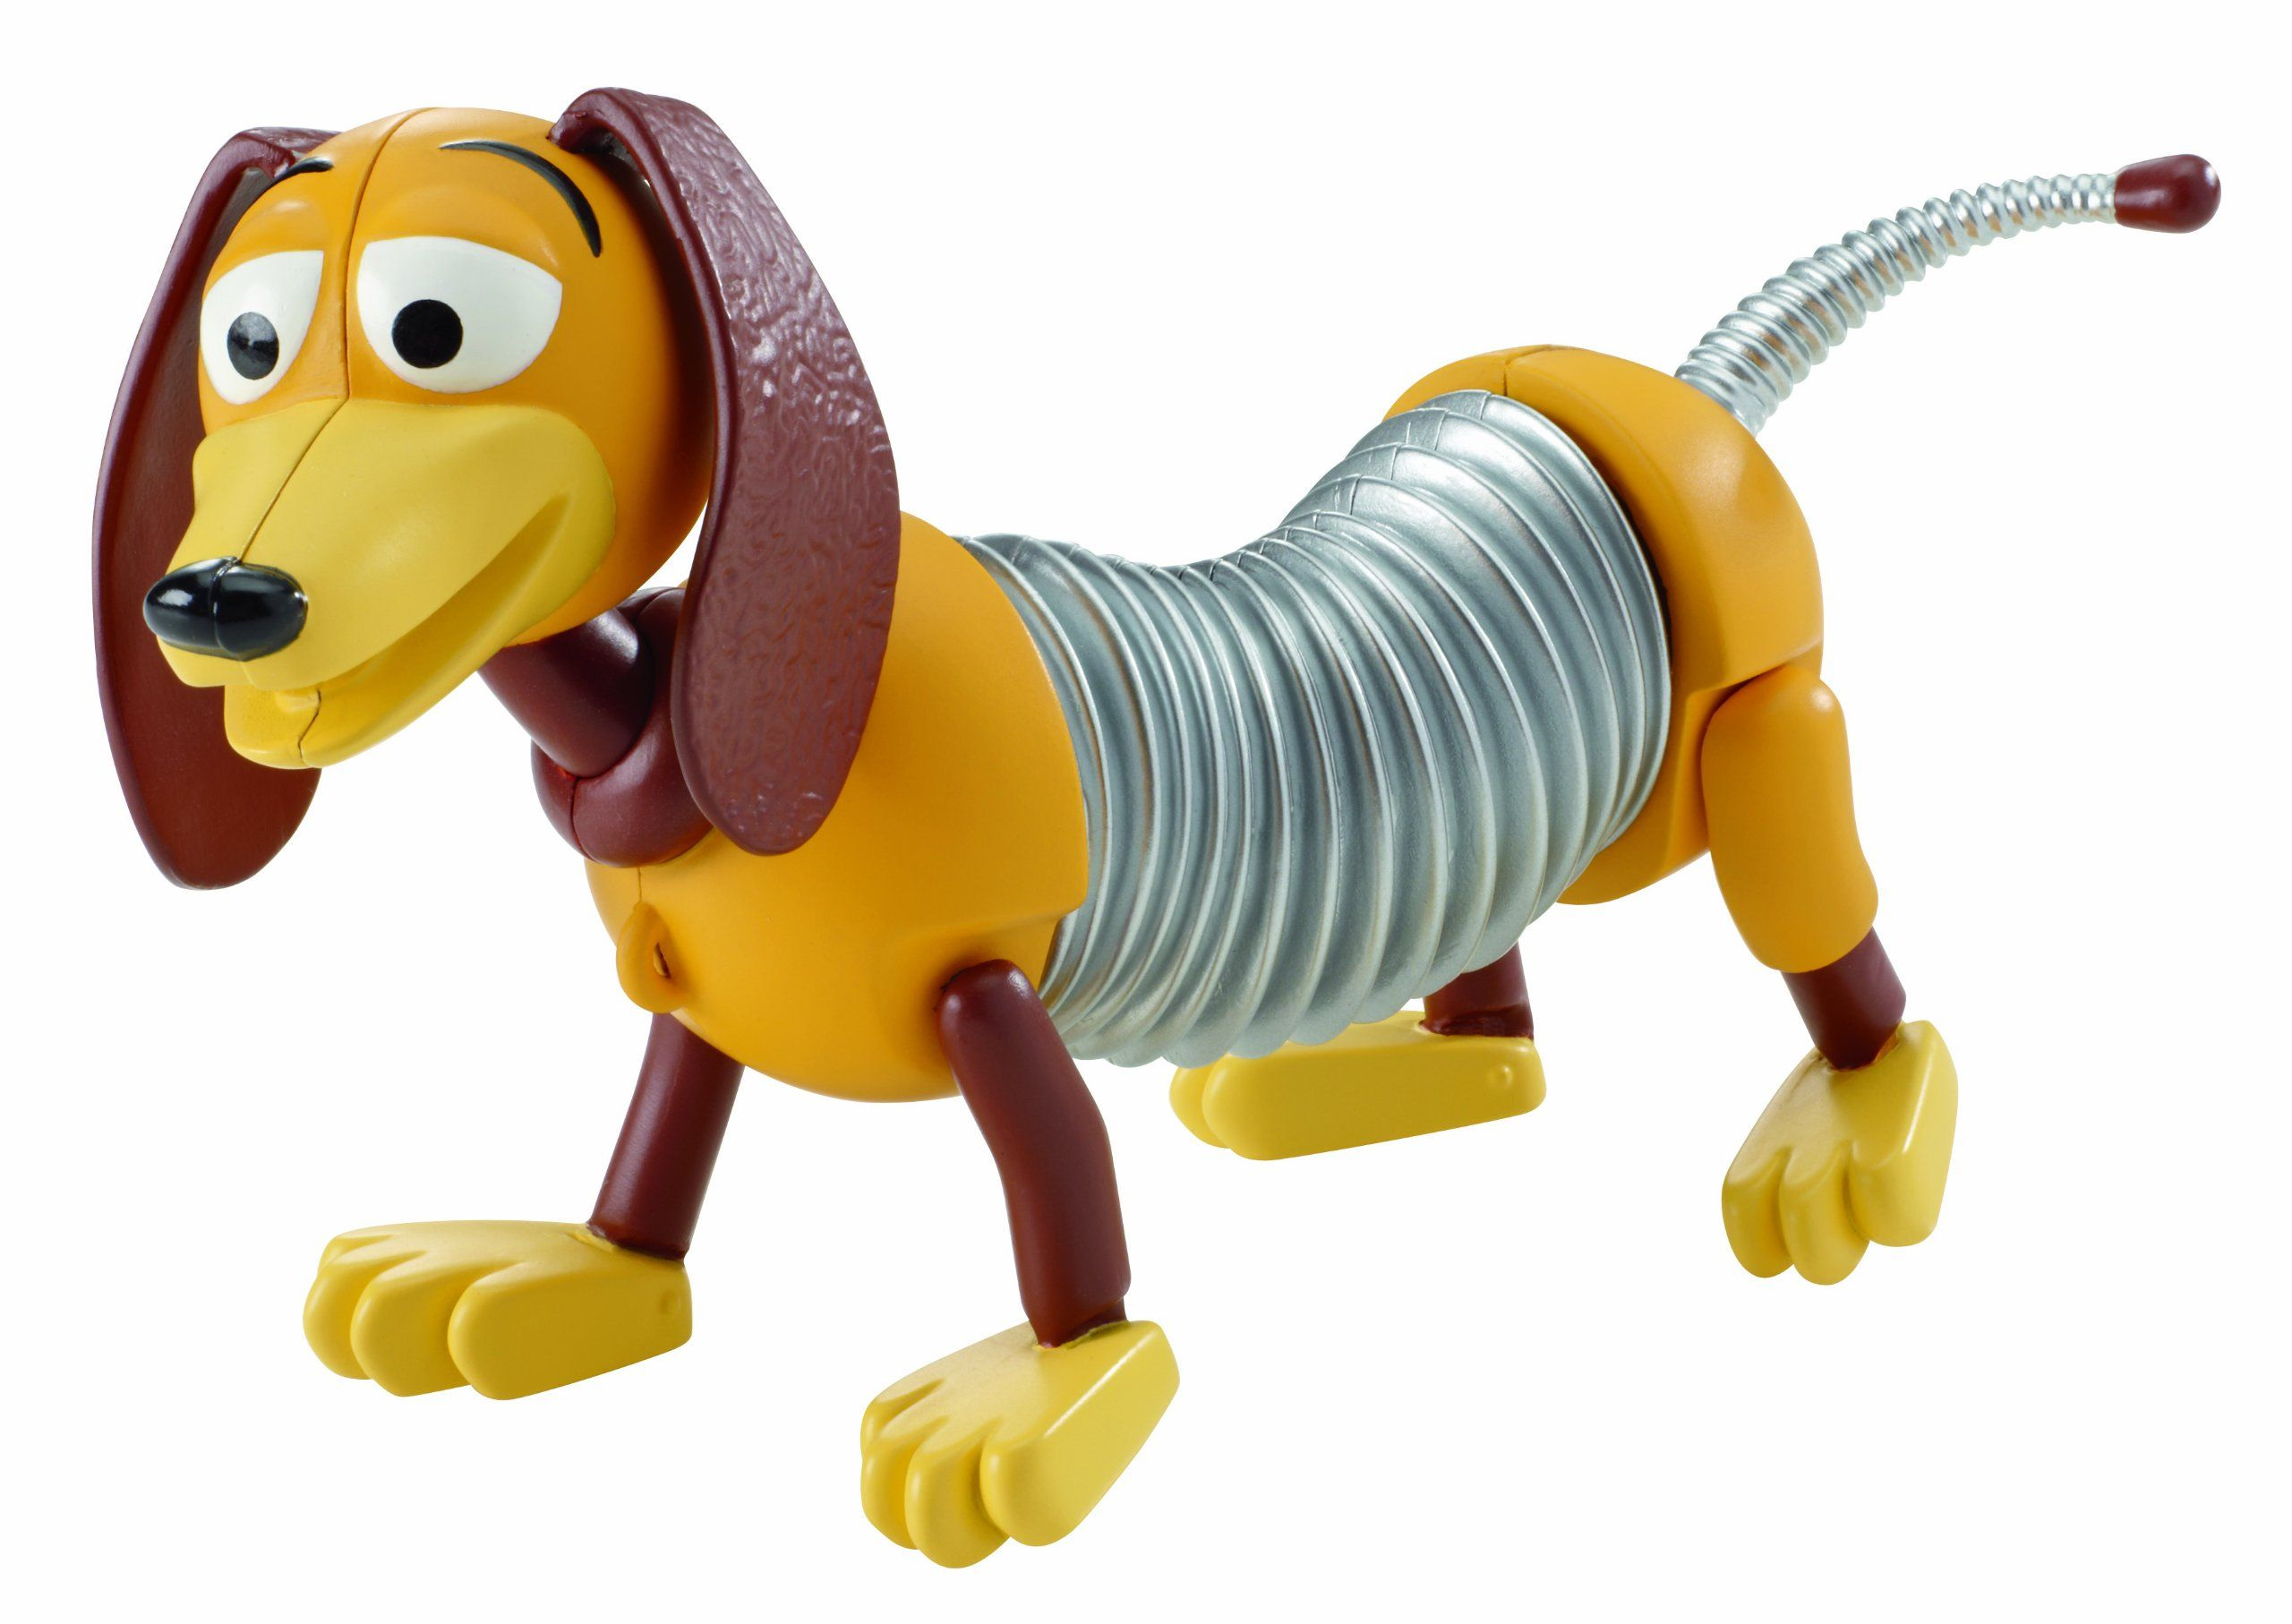 Toy Story Slinky Dog Figure Toy Story Slinky Toy Story Figures